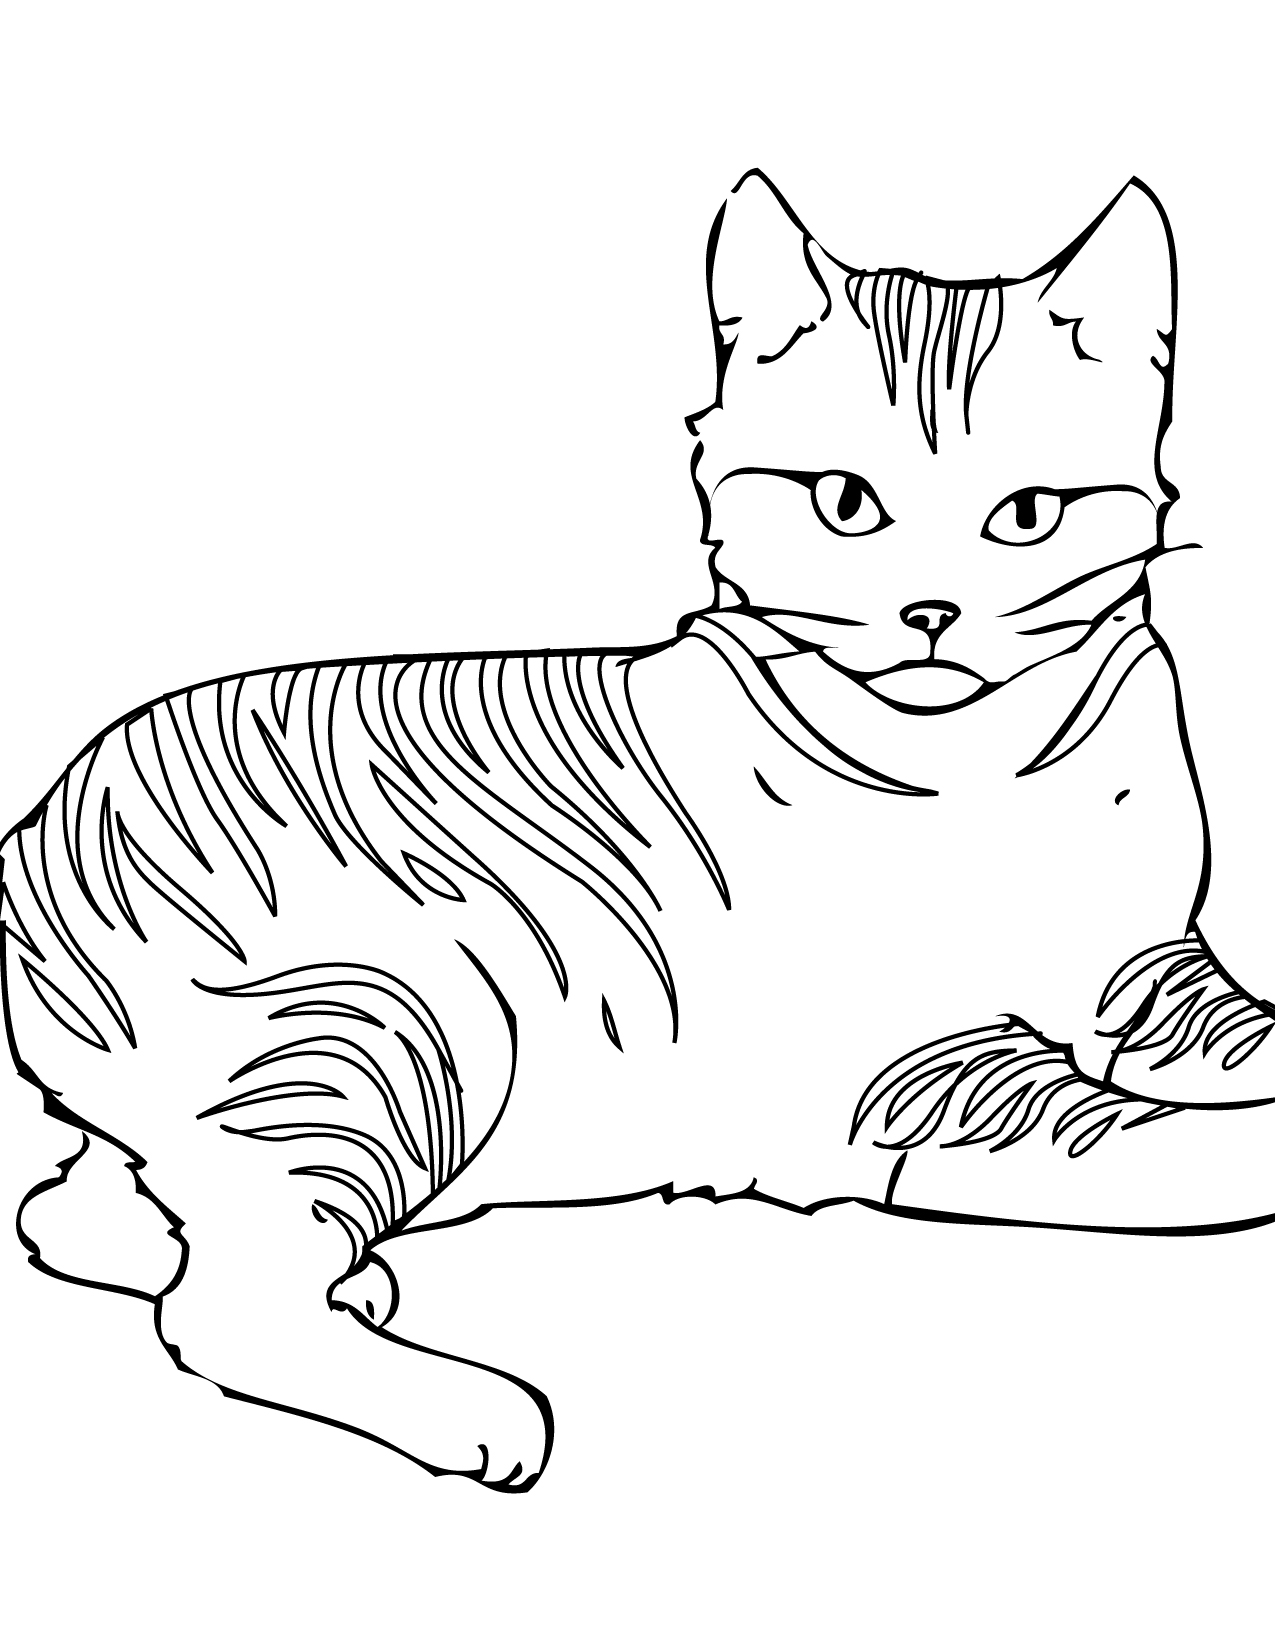 Cute Cat Coloring Pages To Print at GetDrawings.com | Free for ...